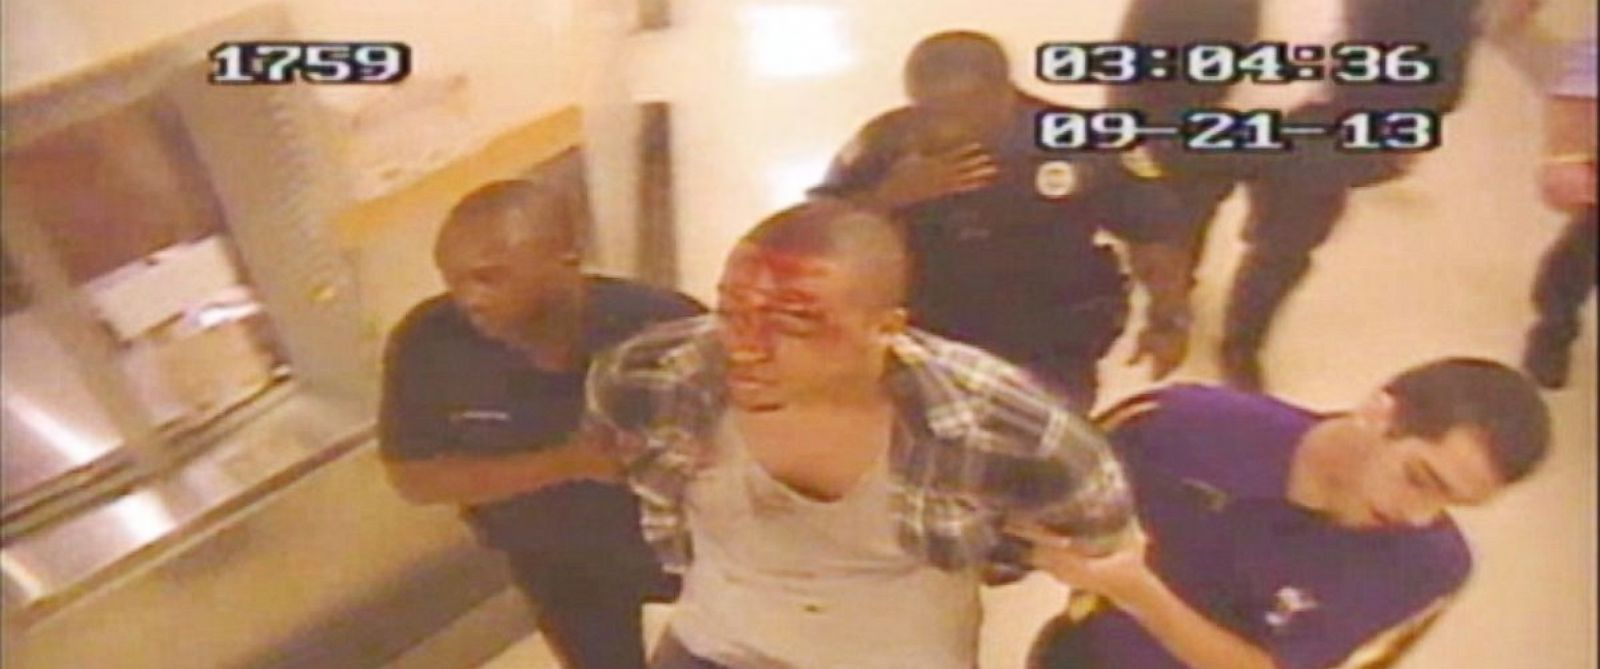 PHOTO: Rob Coney is brought to a back room in Harrahs Resort after an altercation with hotel security.